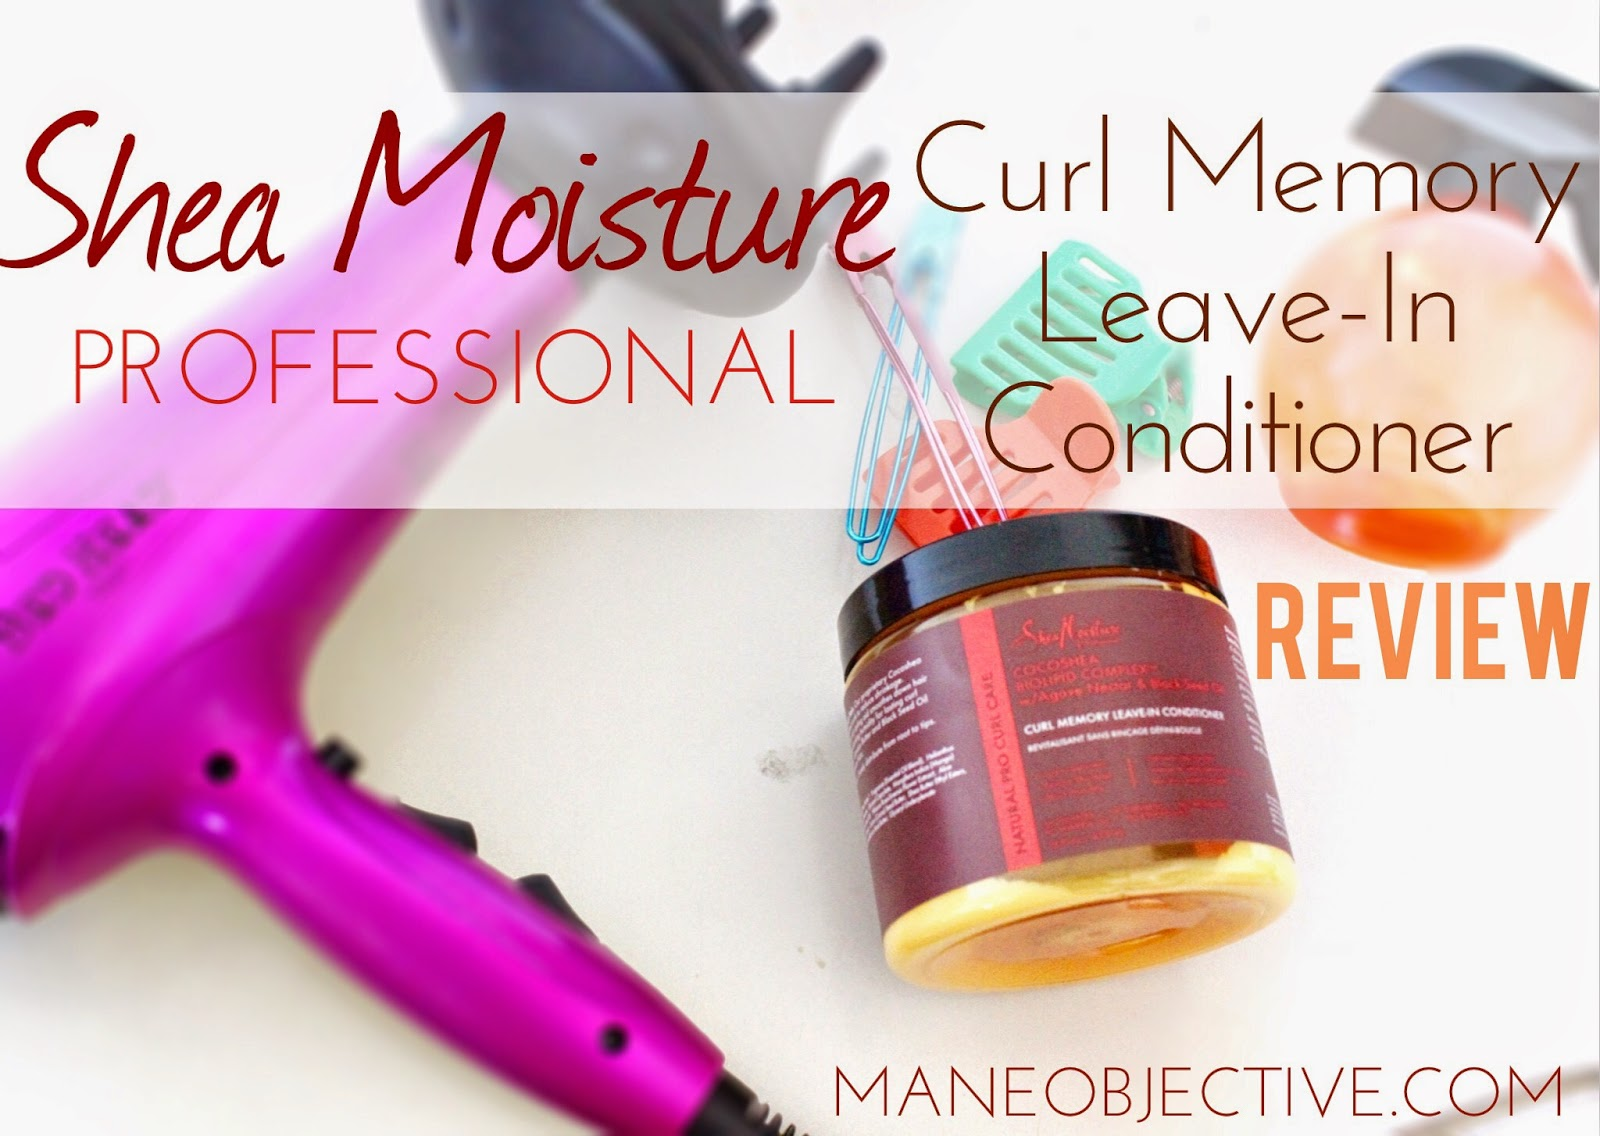 Shea Moisture Professional Curl Memory Leave-In Conditioner Review